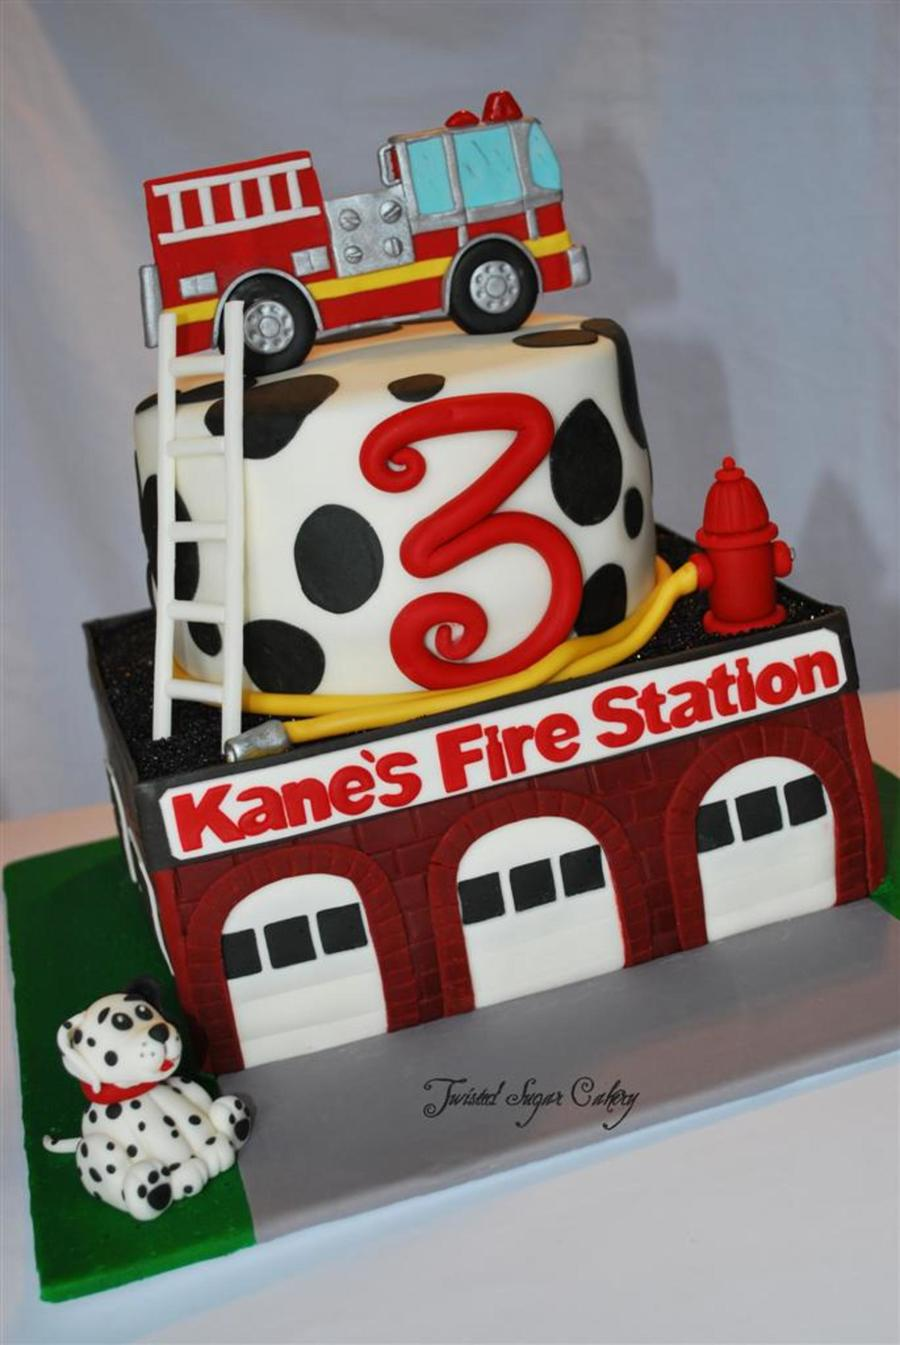 Fire Truck Theme Birthday Cake All Decorations Are Fondant Client Sent Me A Picture From Cake Fiction And Asked Me To Make A Similar on Cake Central